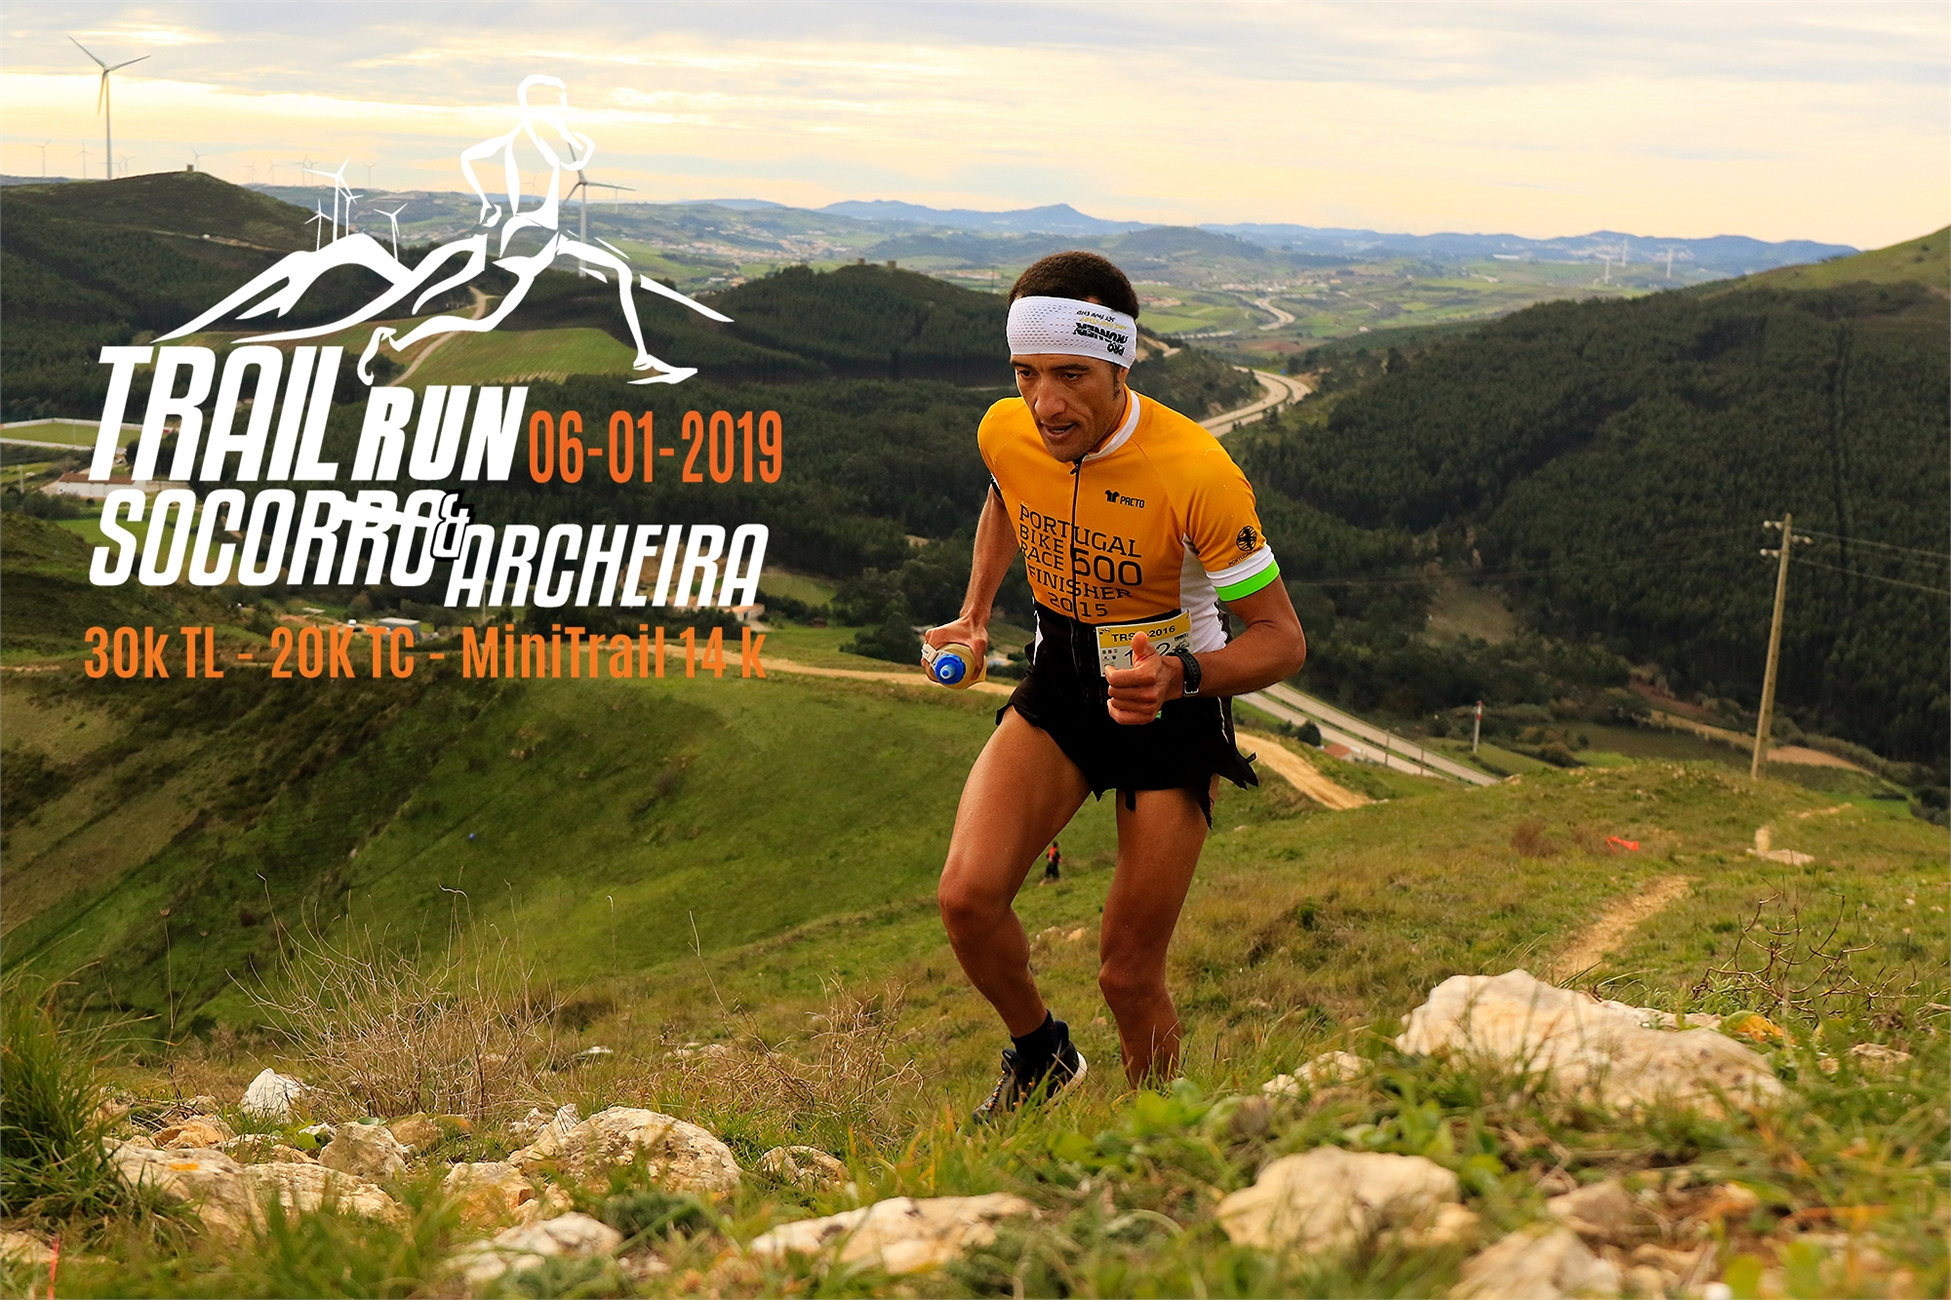 TRSA - Trail Run Socorro e Archeira - Eventos - TURRESEVENTS